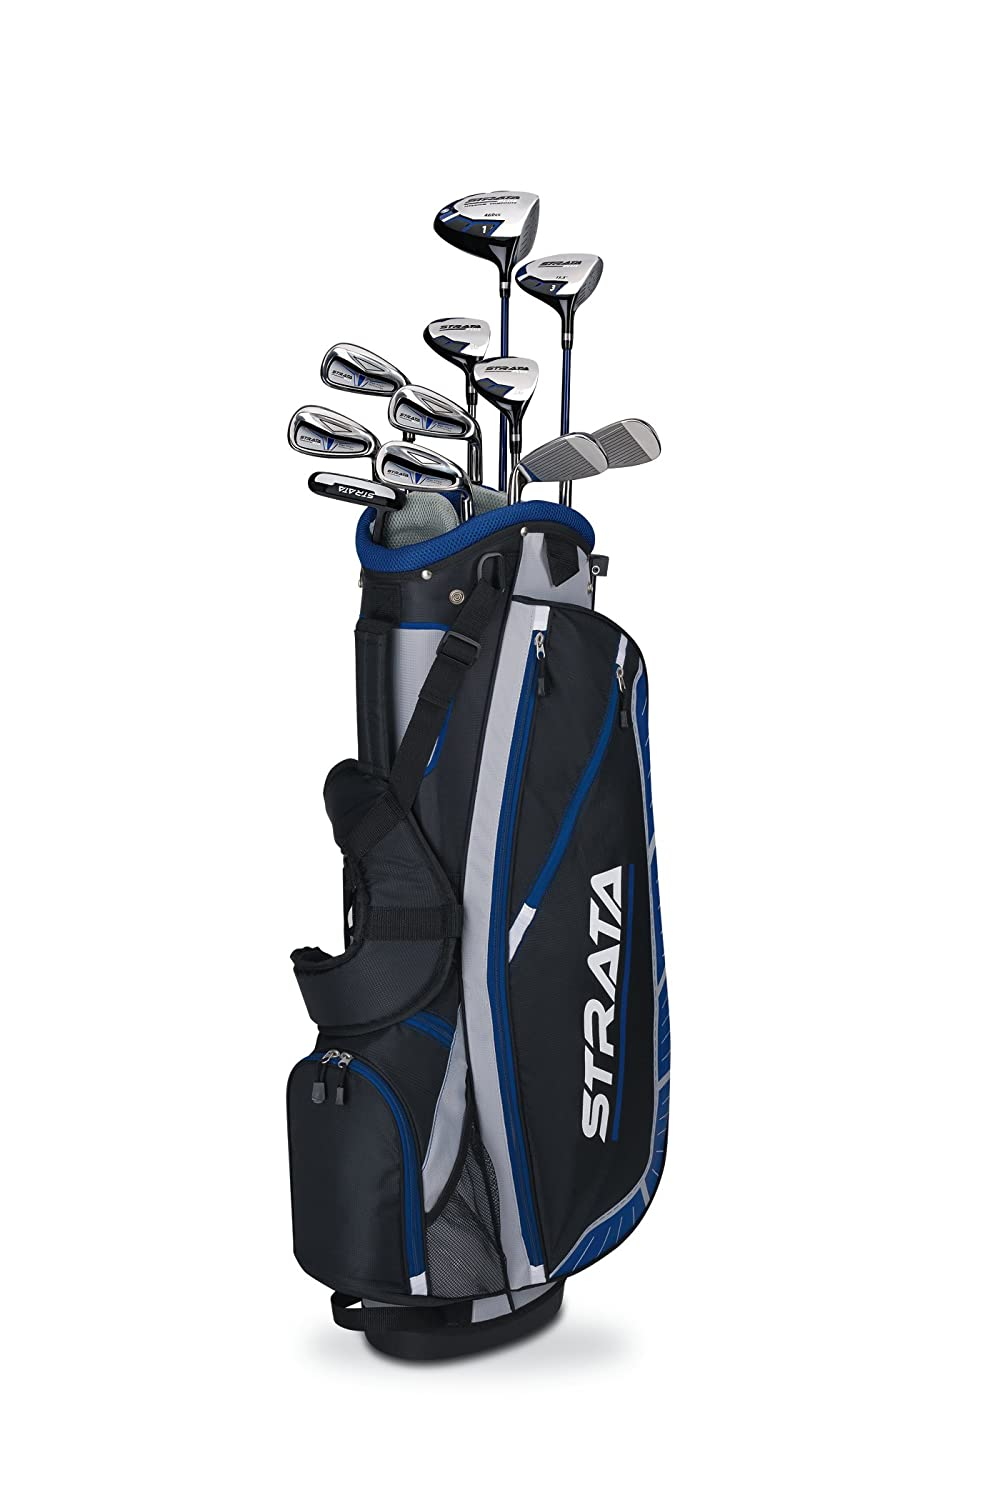 Callaway Strata Plus Golf Club Set